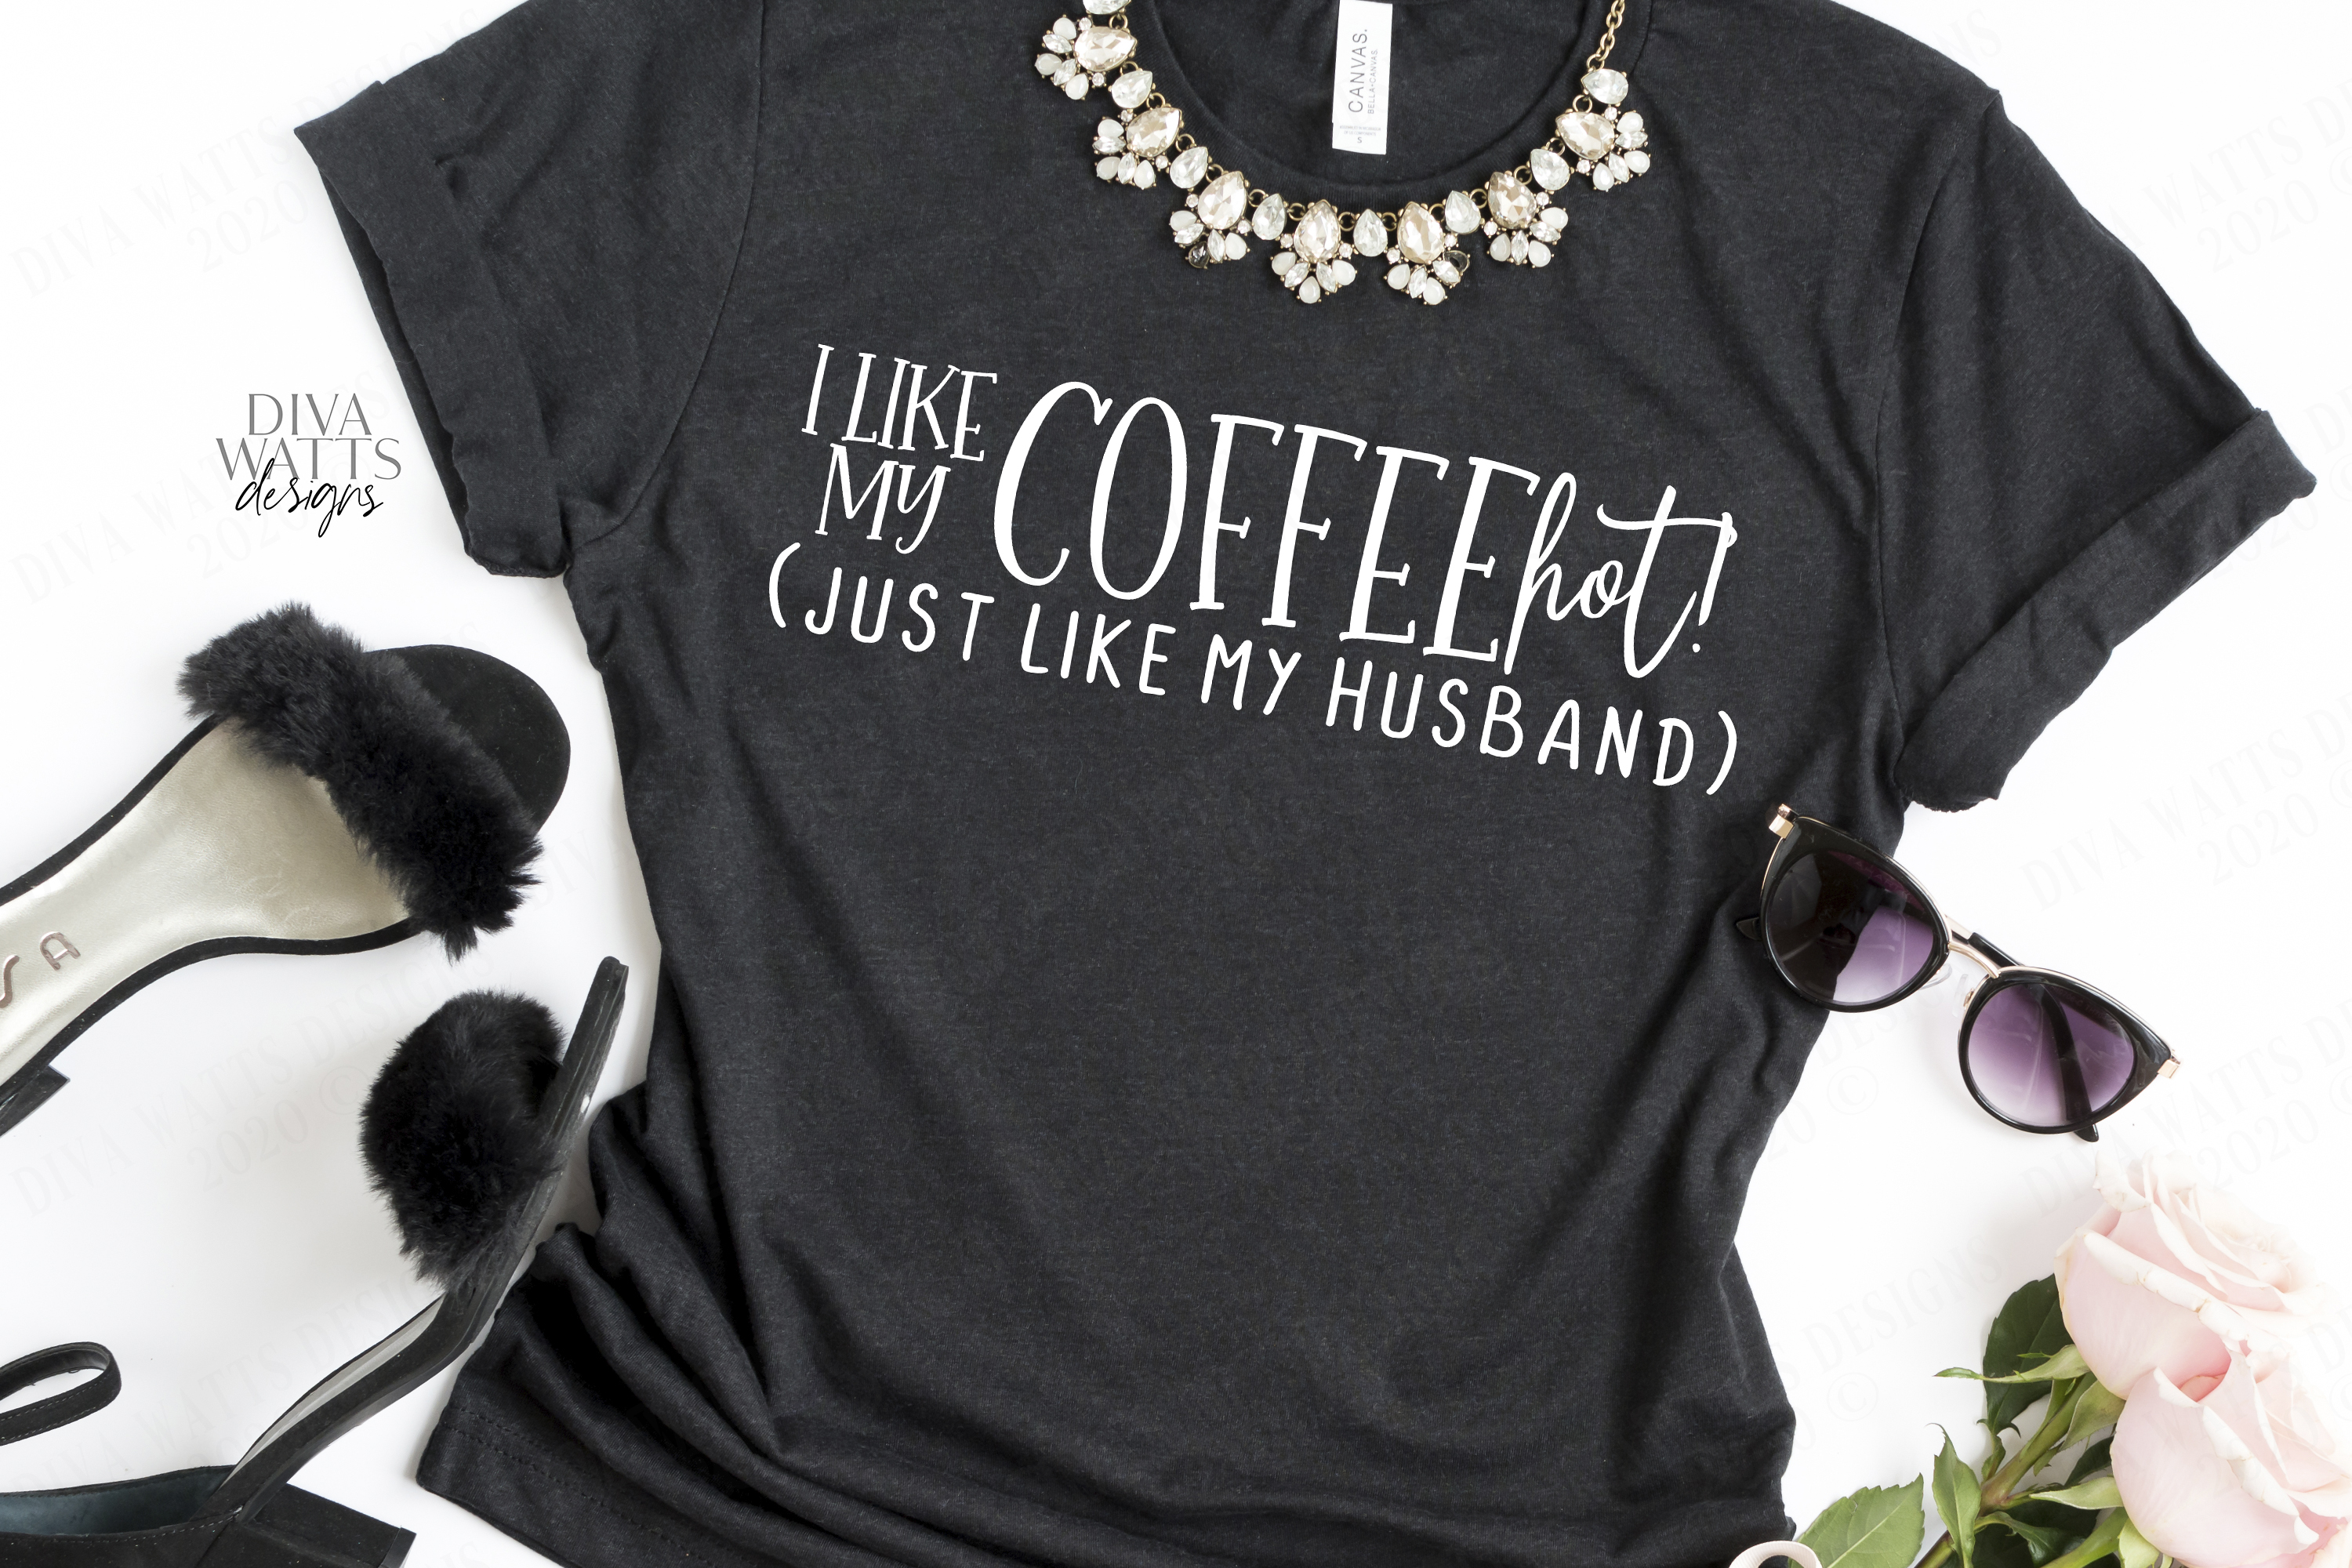 I Like My Coffee HOT! Like My Husband - Coffee Bar Humor SVG example image 2